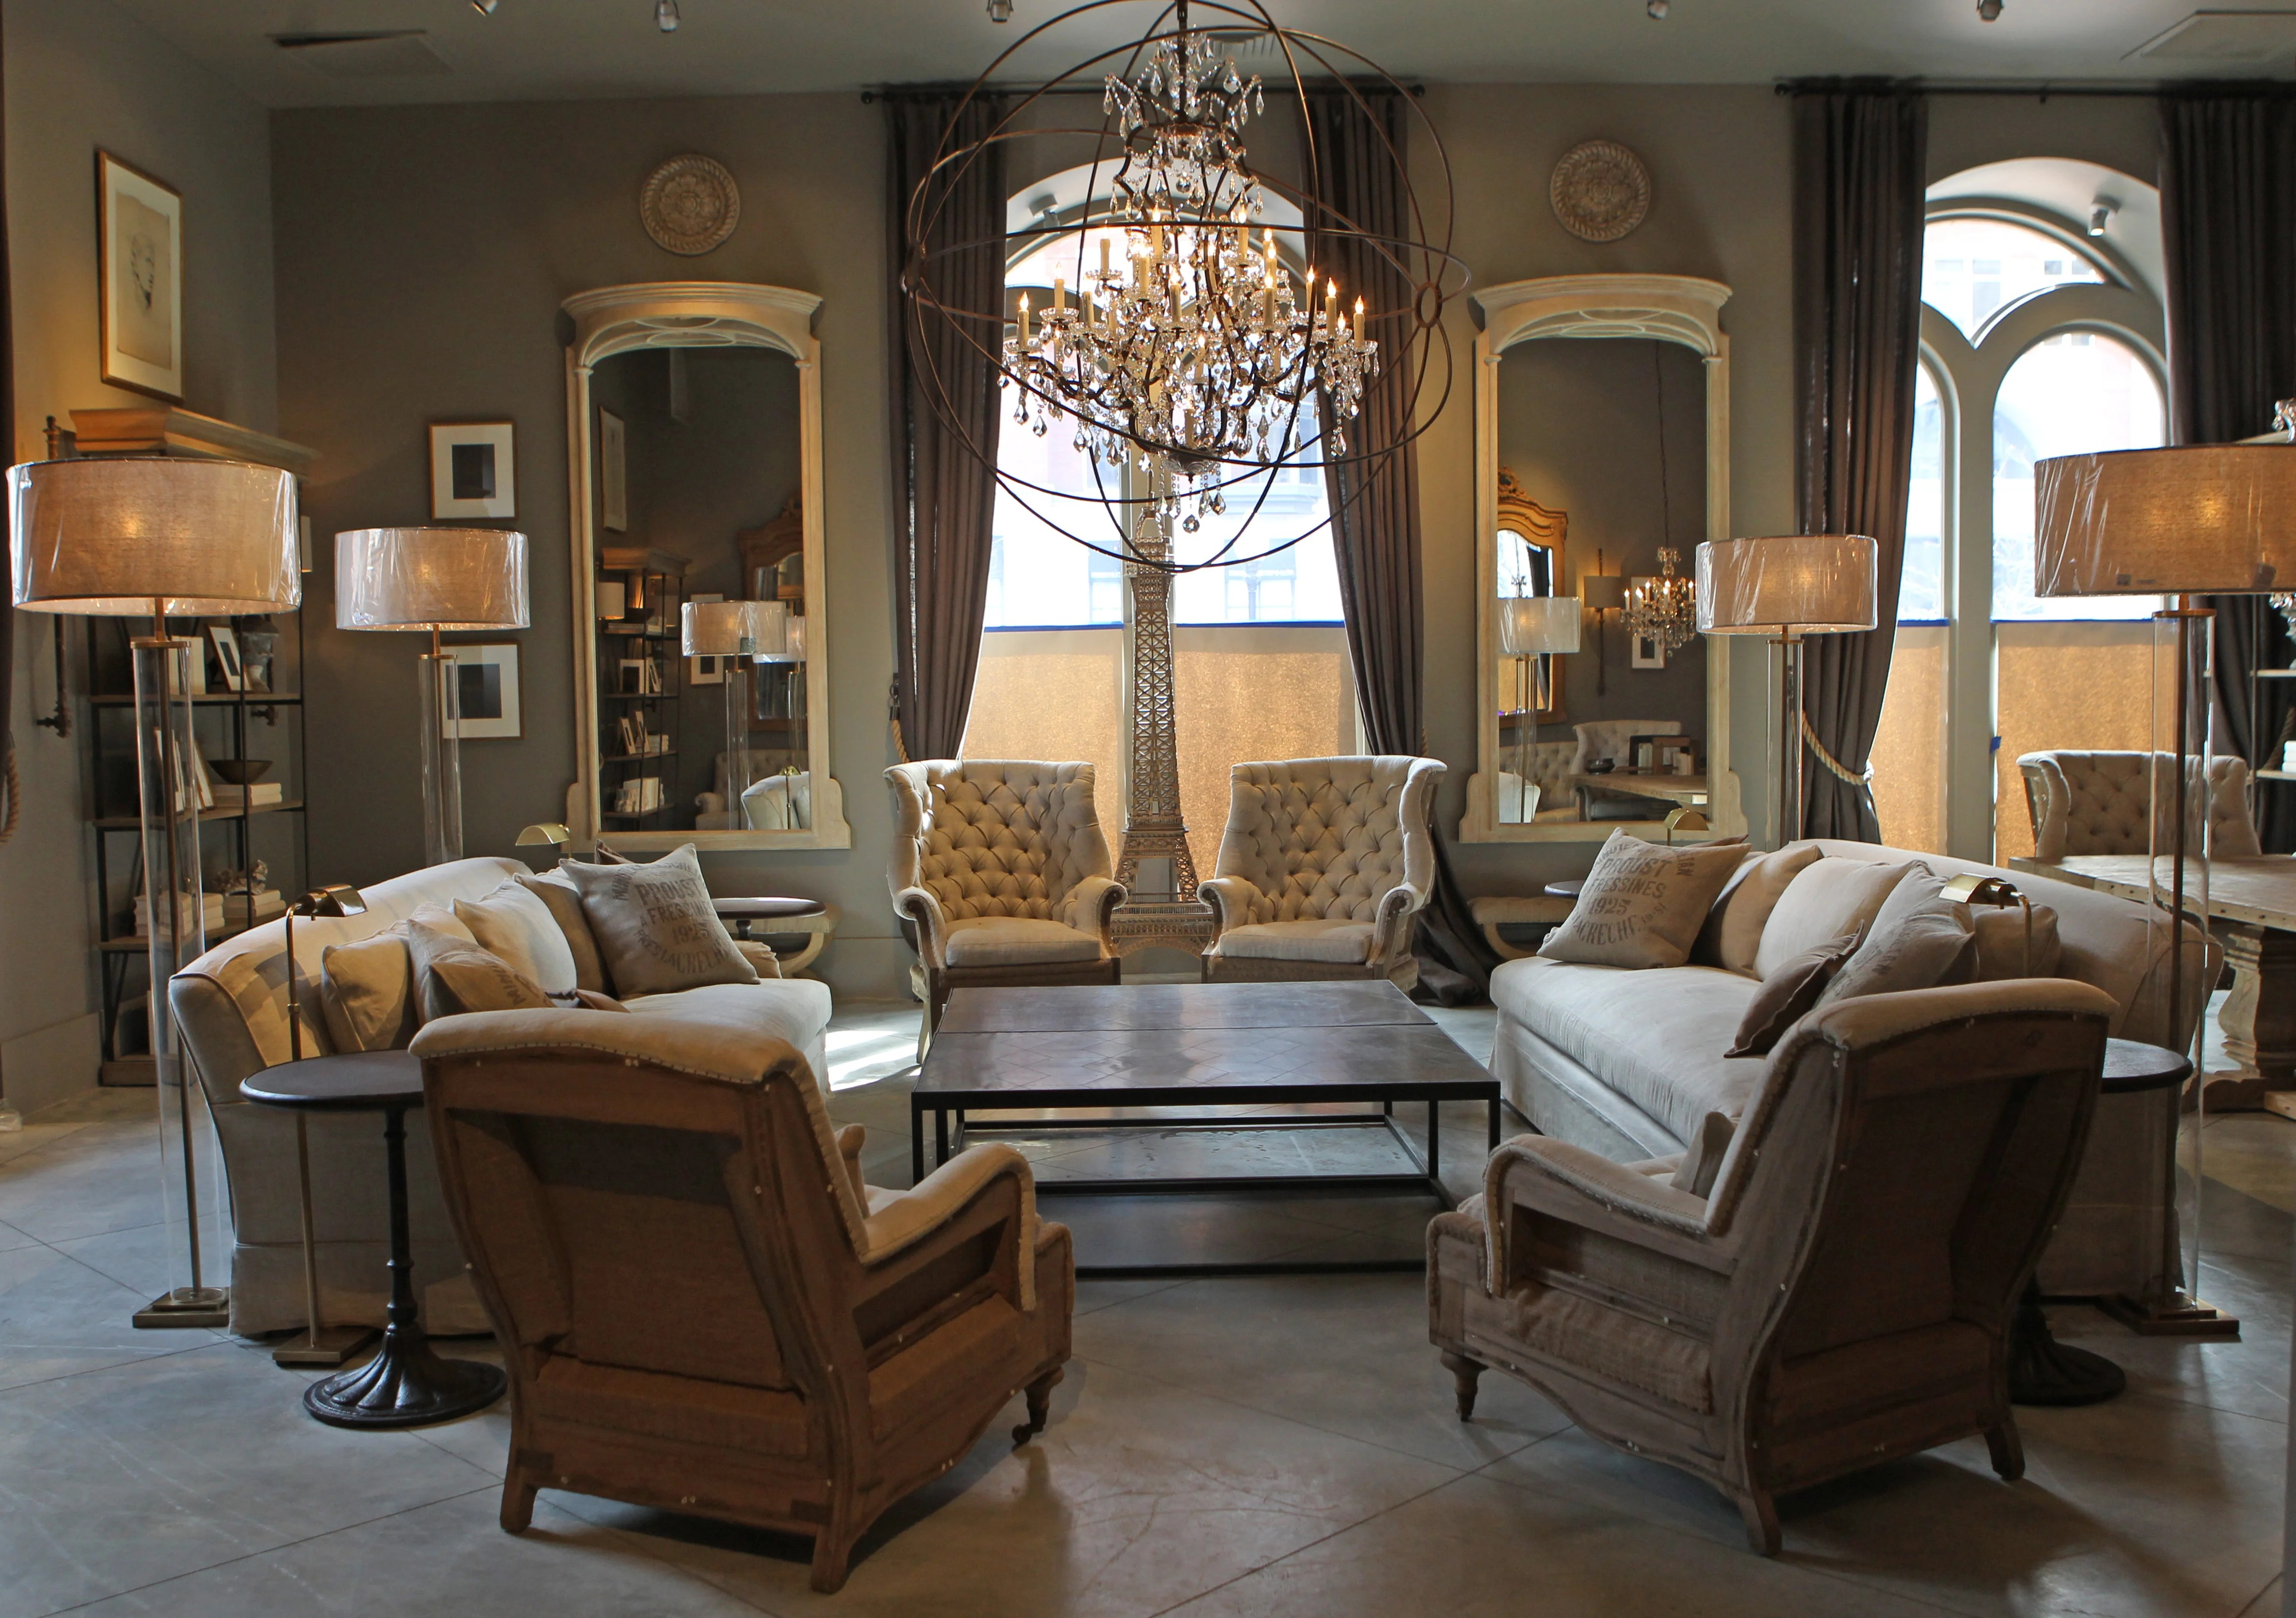 Rh Cloud Sofa Restoration Hardware Opens New Flagship Store